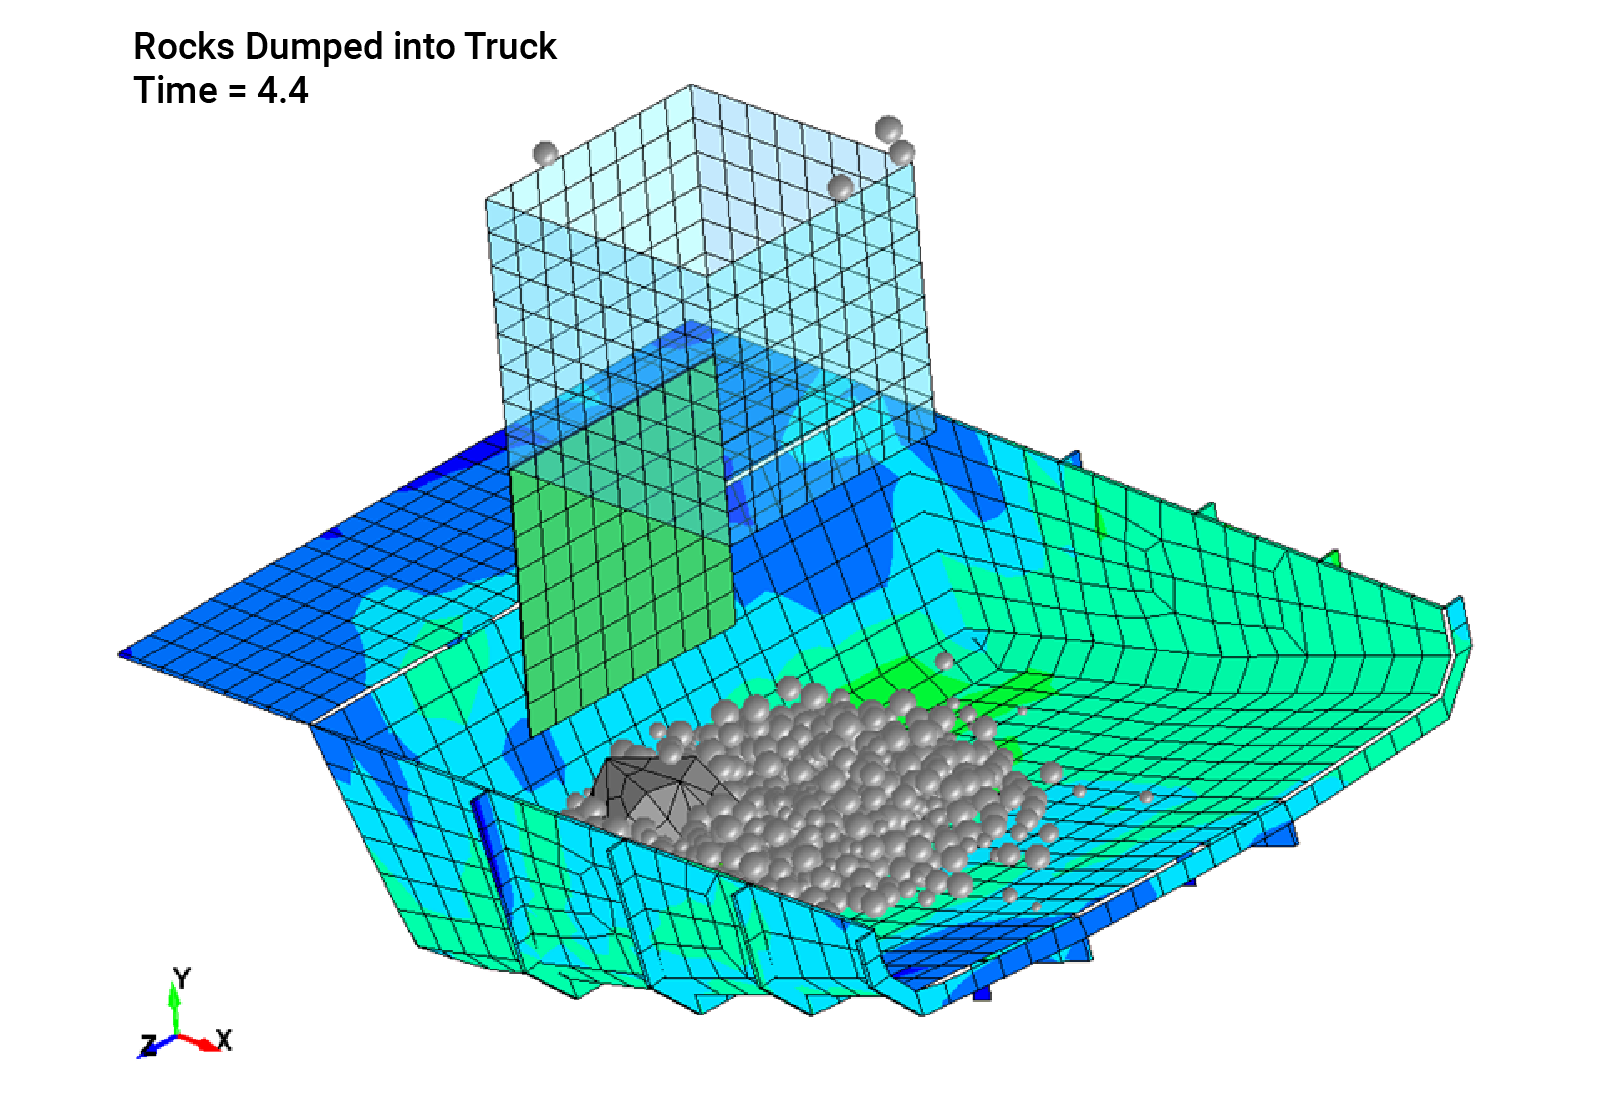 Figure 2:  Transient stress analysis results from rocks hitting dump truck bed.